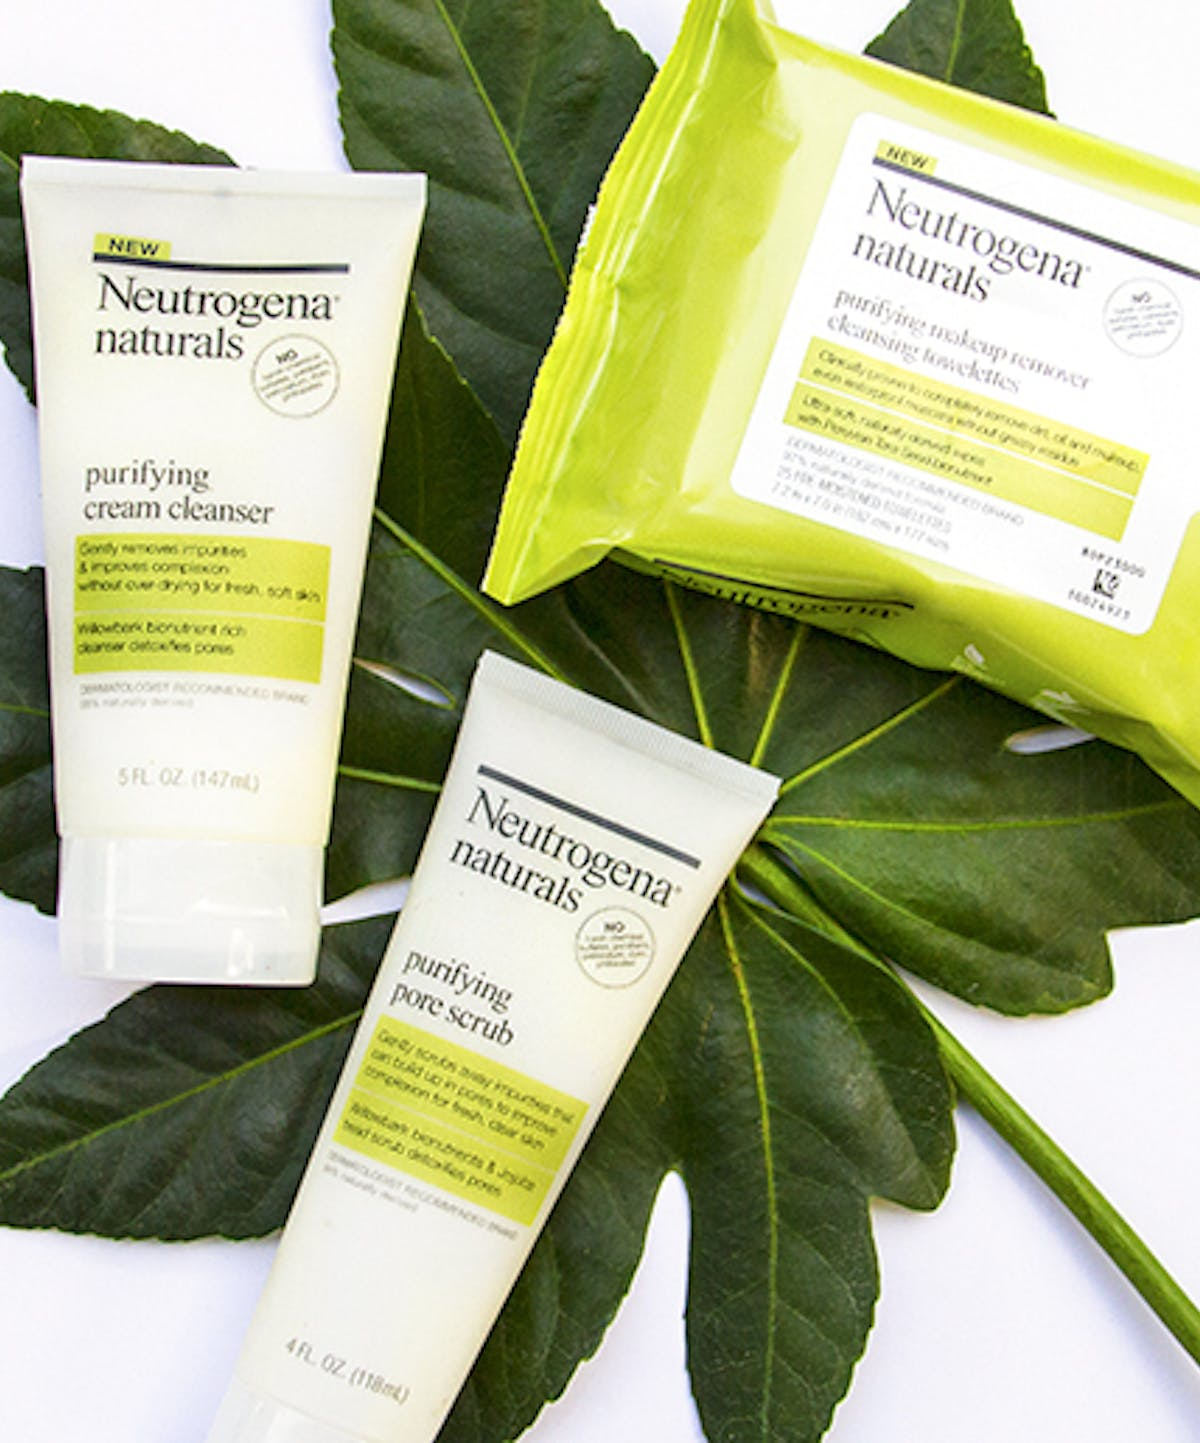 Naturals Purifying Makeup Remover Cleansing Towelettes Neutrogena